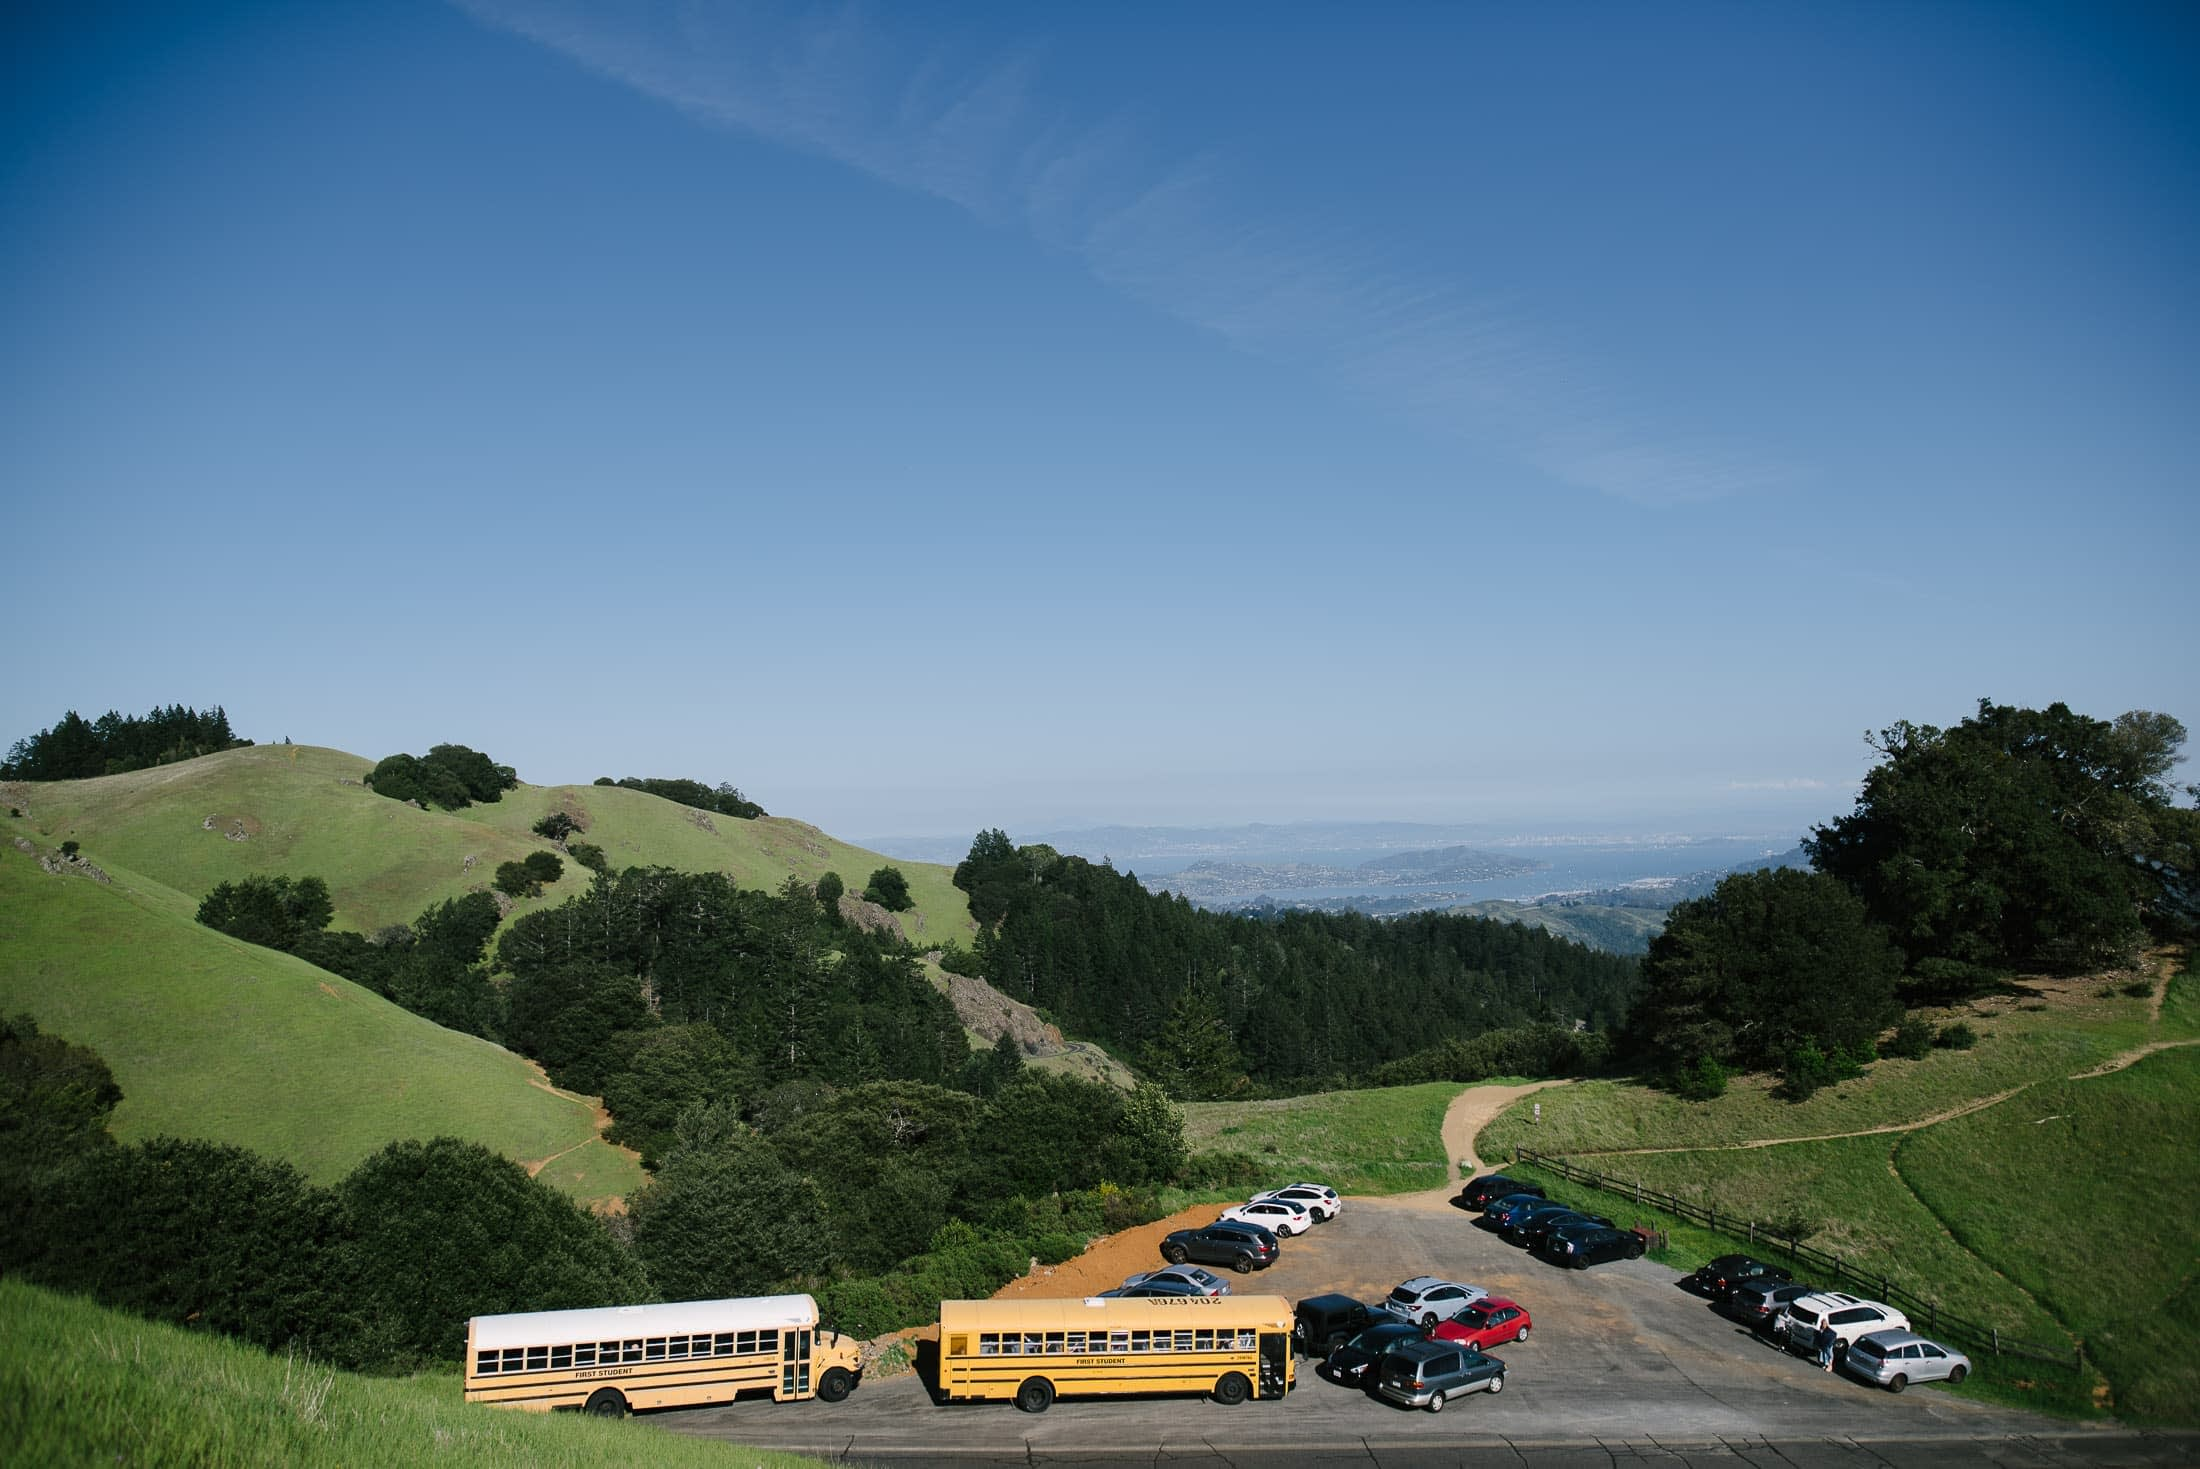 Busses delivering guests to wedding on mount tam